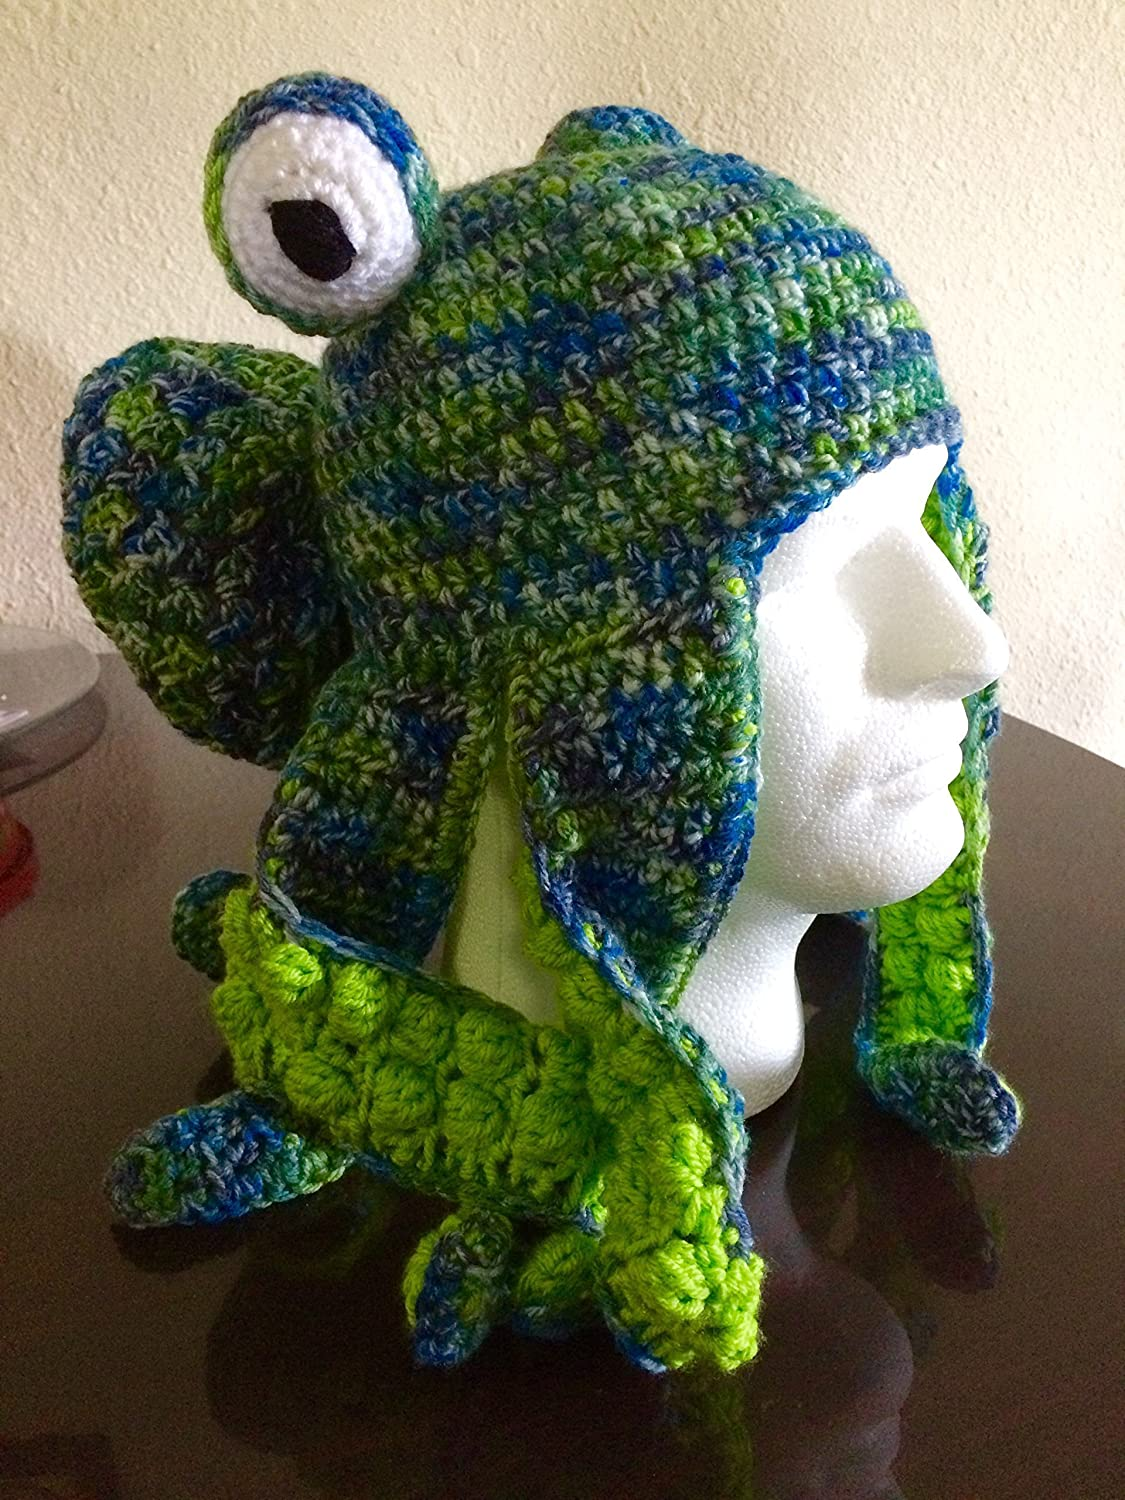 Octopus Hat - Octopus Beanie - Octopus Cosplay - Octopus Cosplay Costume - Octopus Fantasy Hat - Octopus Fantasy Beanie